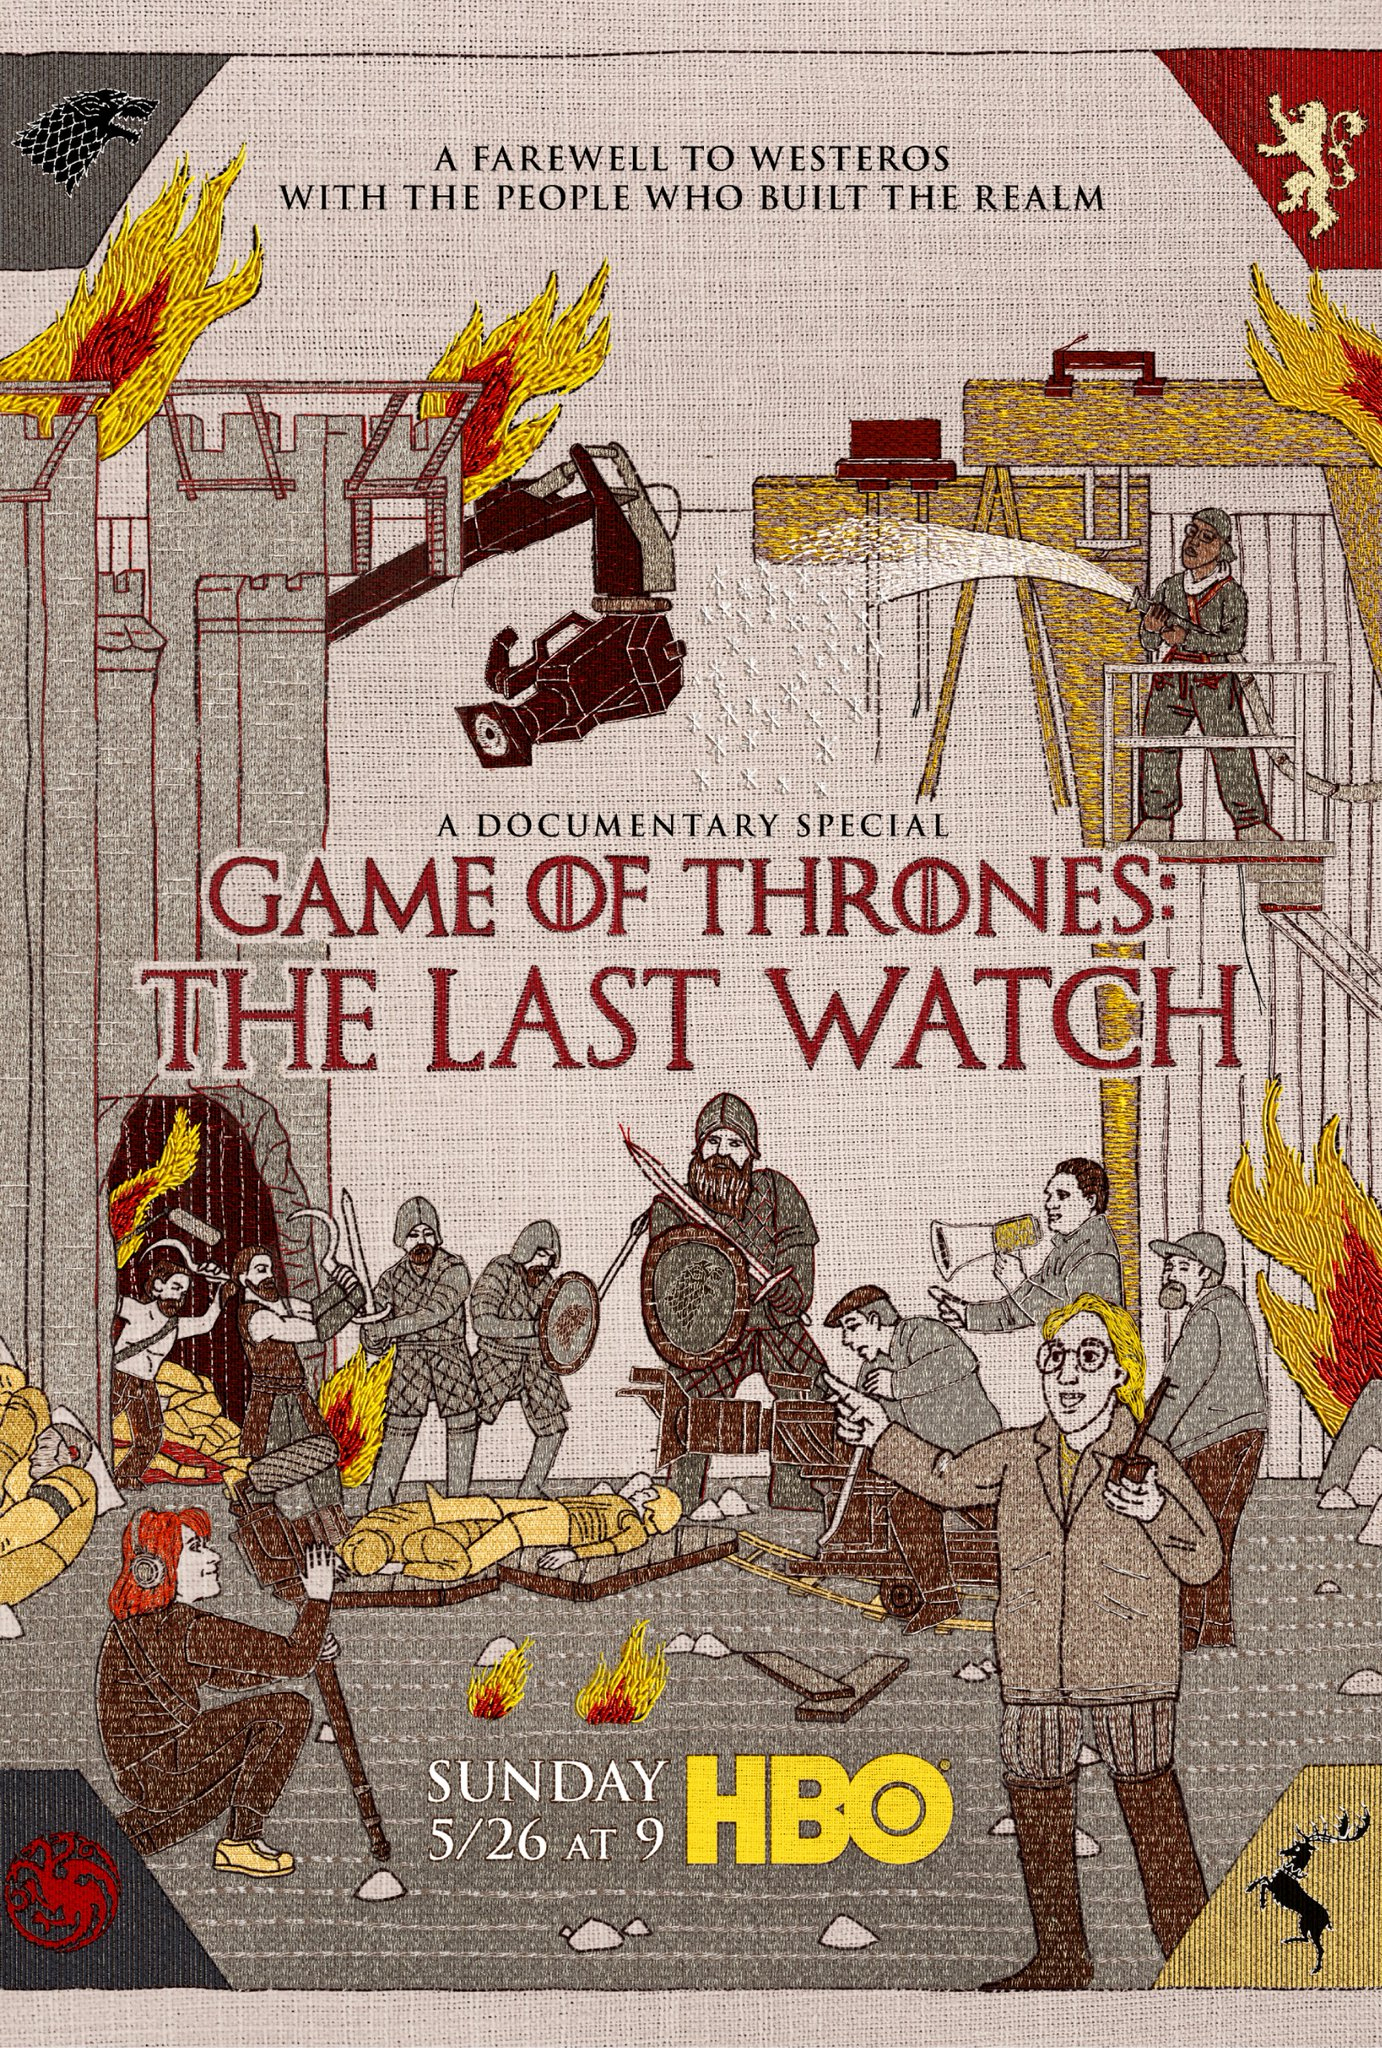 Game of Thrones: The Last Watch - Documentary Poster